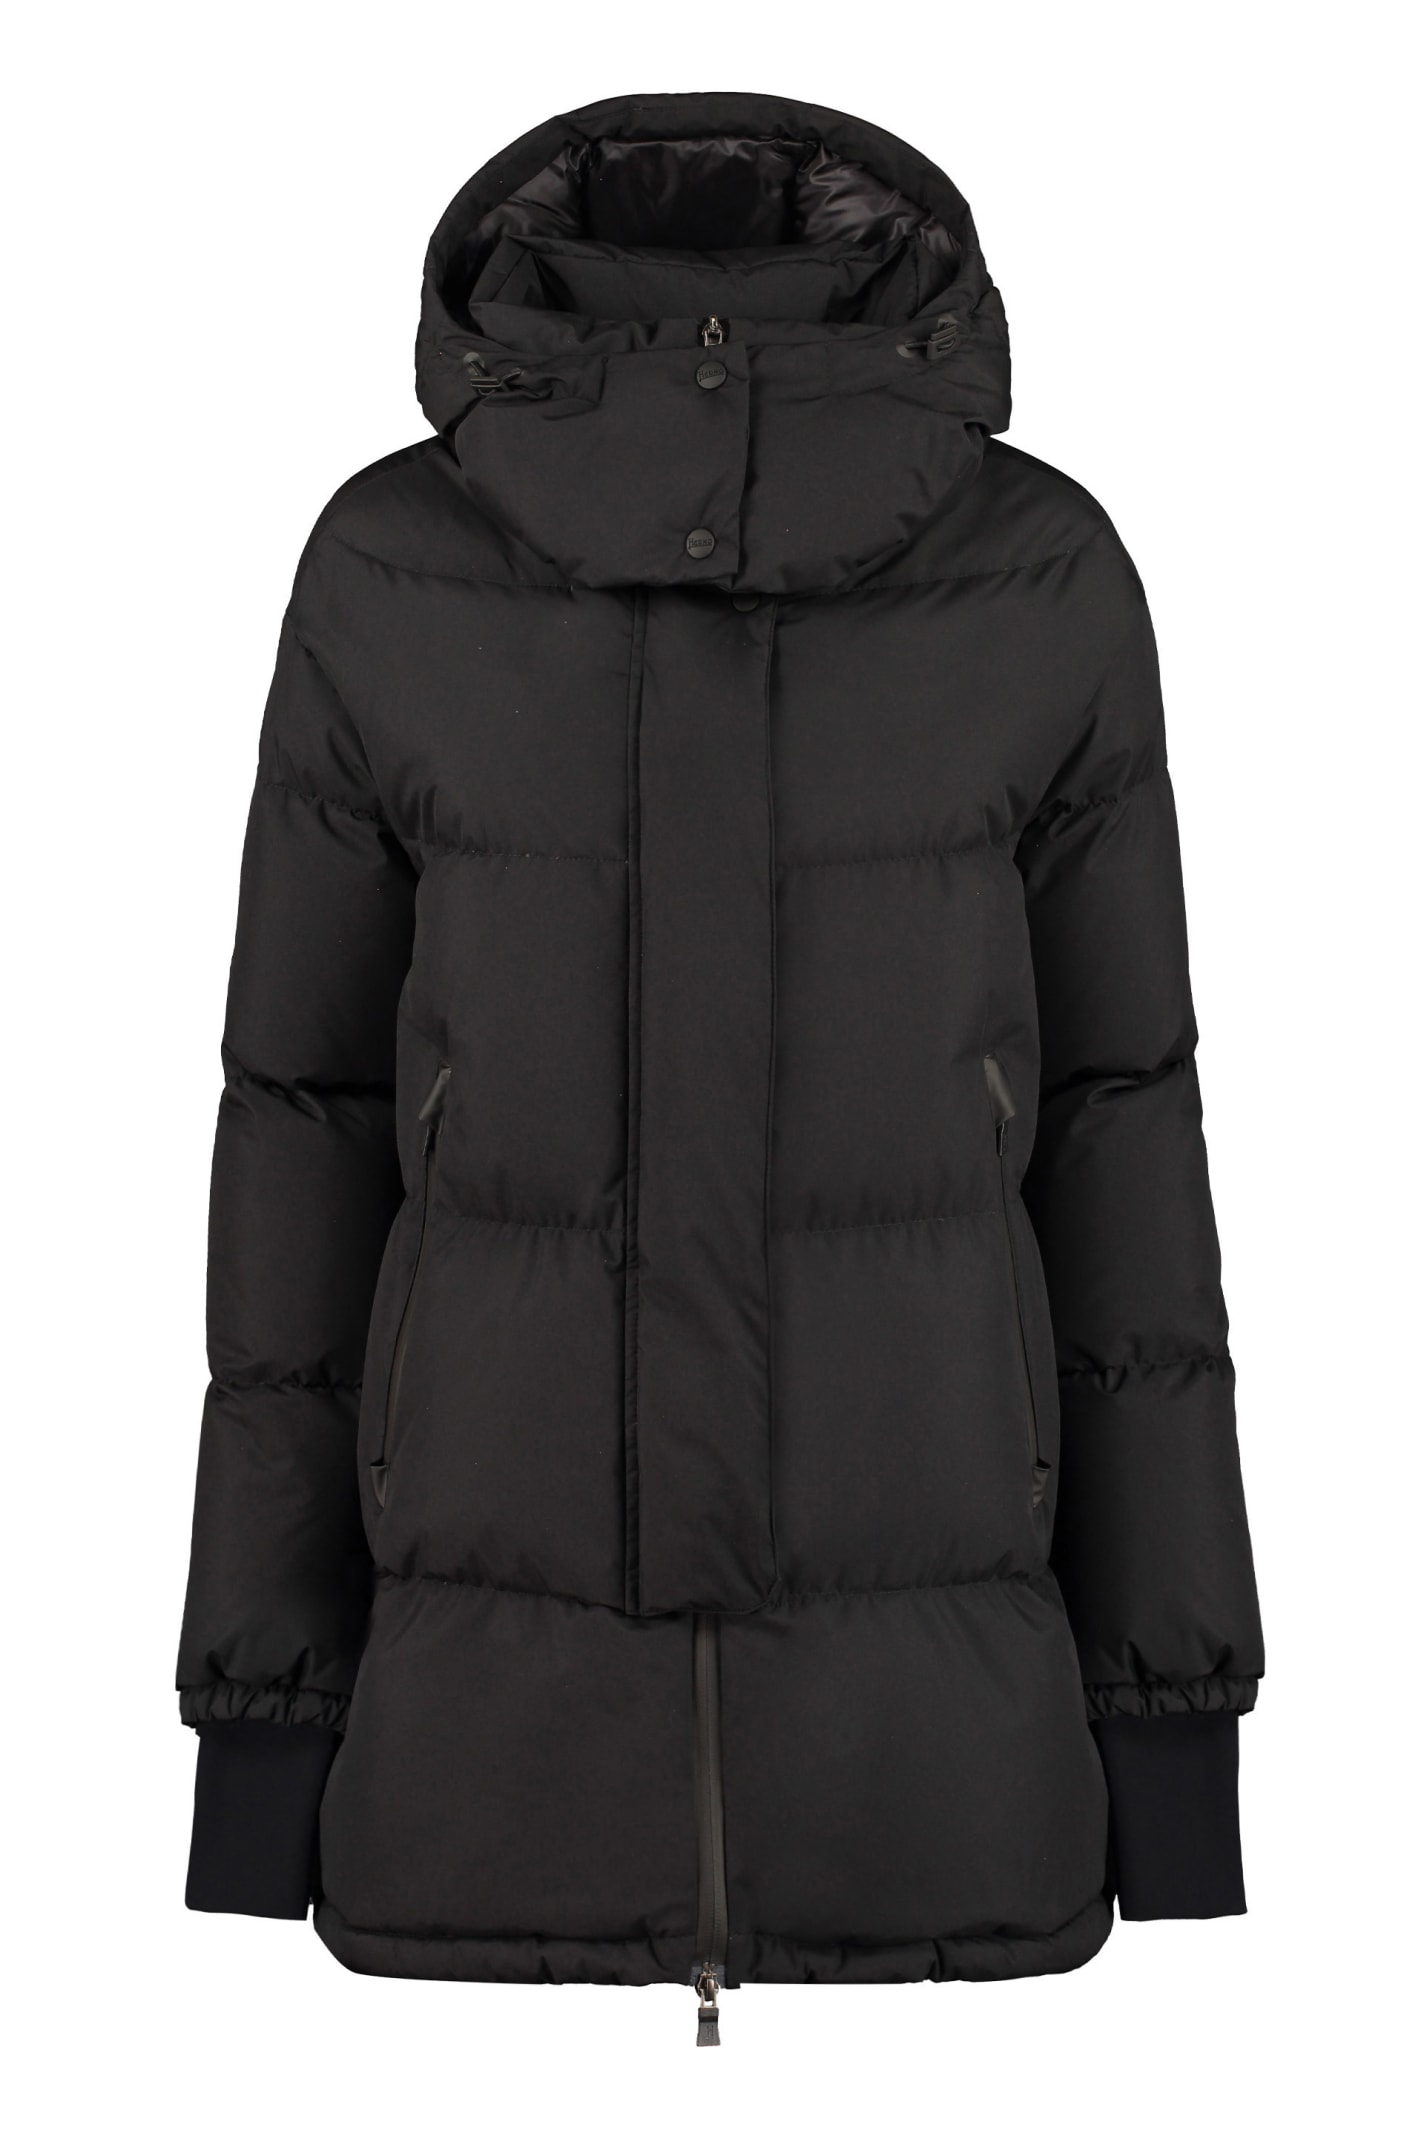 Herno OVERSIZE HOODED DOWN JACKET